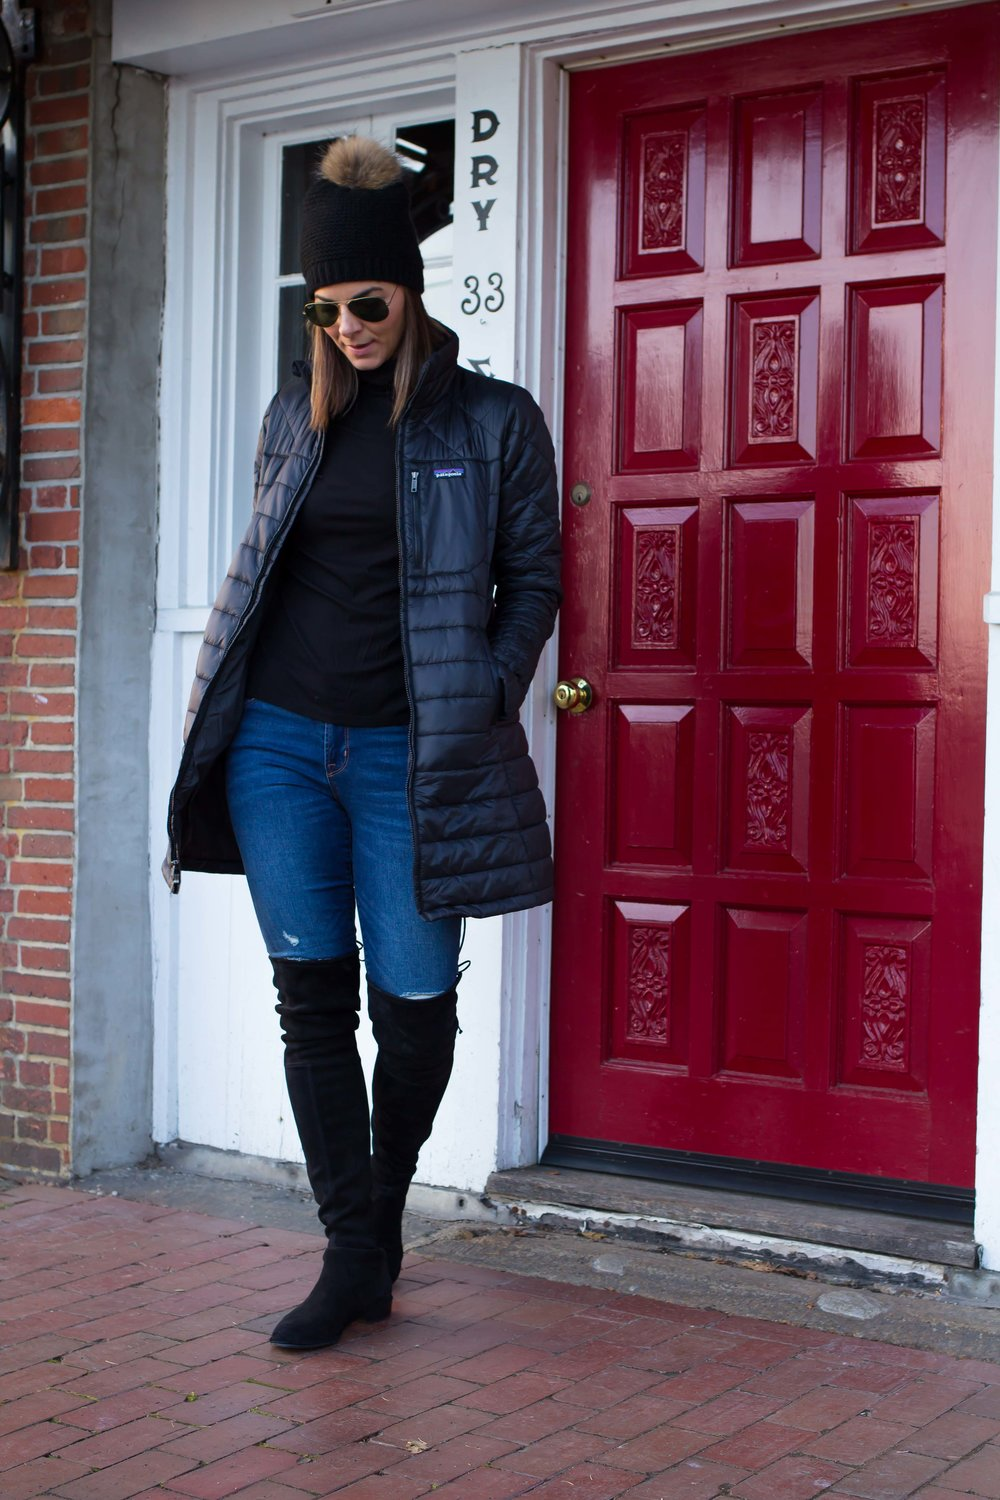 Winter Outfit Ideas – Weekend Outfits – Casual Outfits – Fashion for Women – Patagonia Jacket Outfits – OTK Boots Outfit – Pom Pom Hat Outfits – Street Style Outfits –  heartandseam.com  #heartandseam